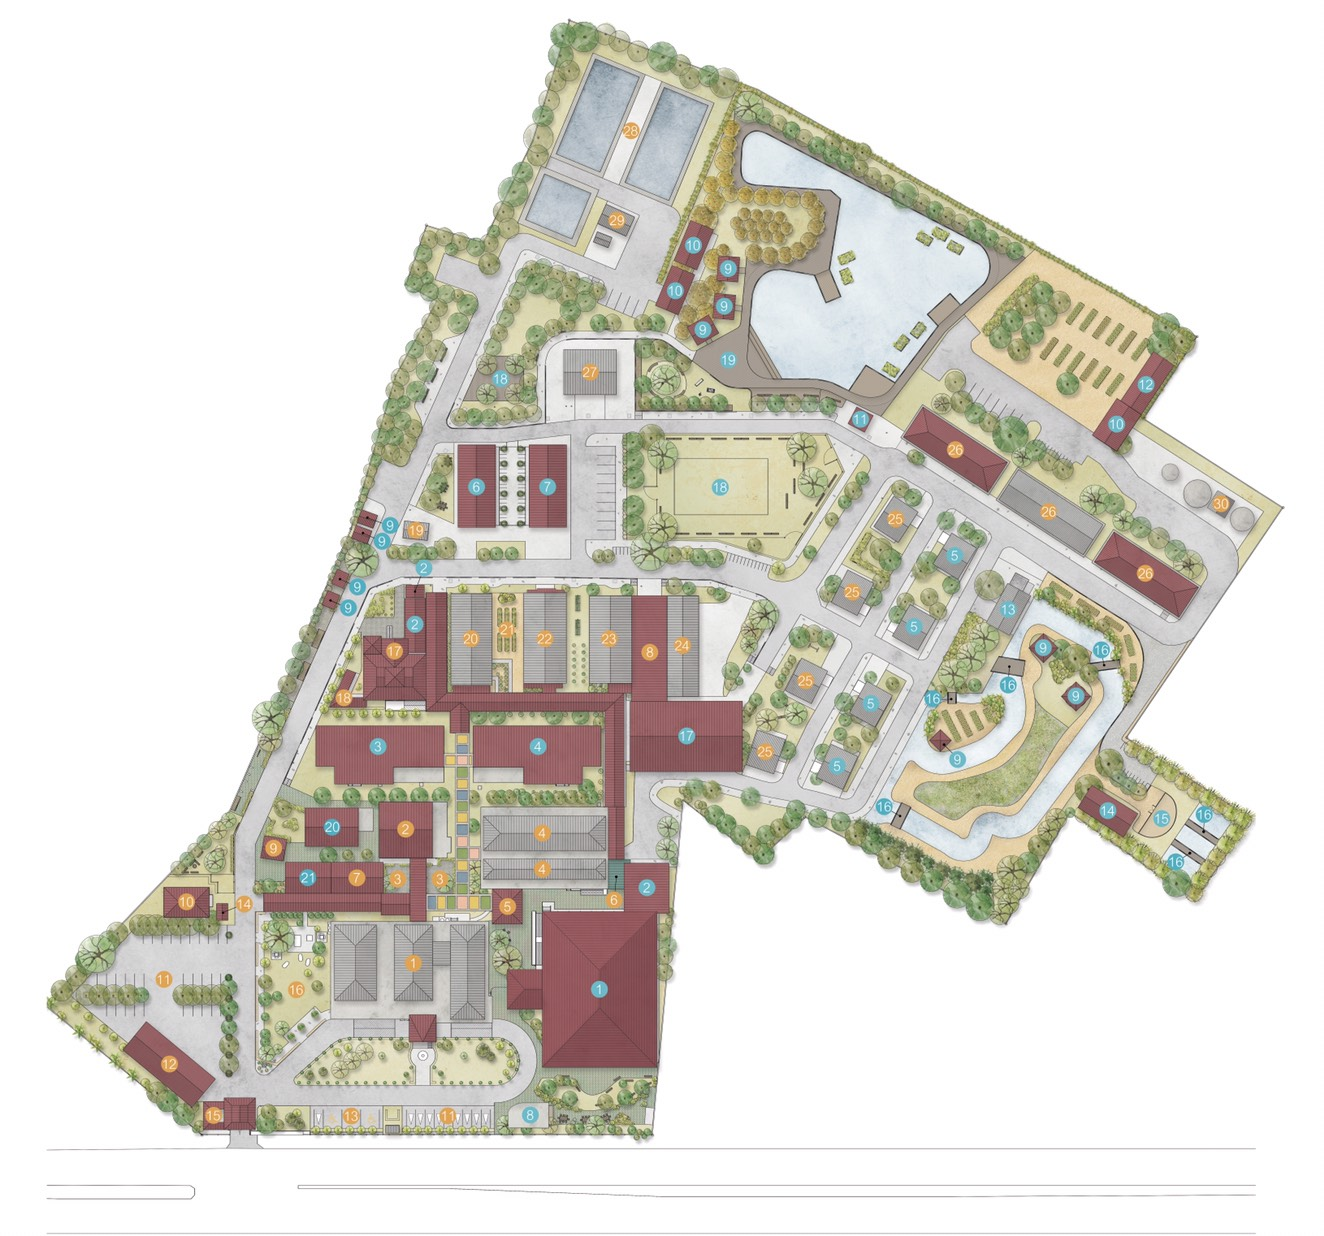 King's Hospitals project: The Masterplan for the renovation of Yi-ngo community hospital in Thailand